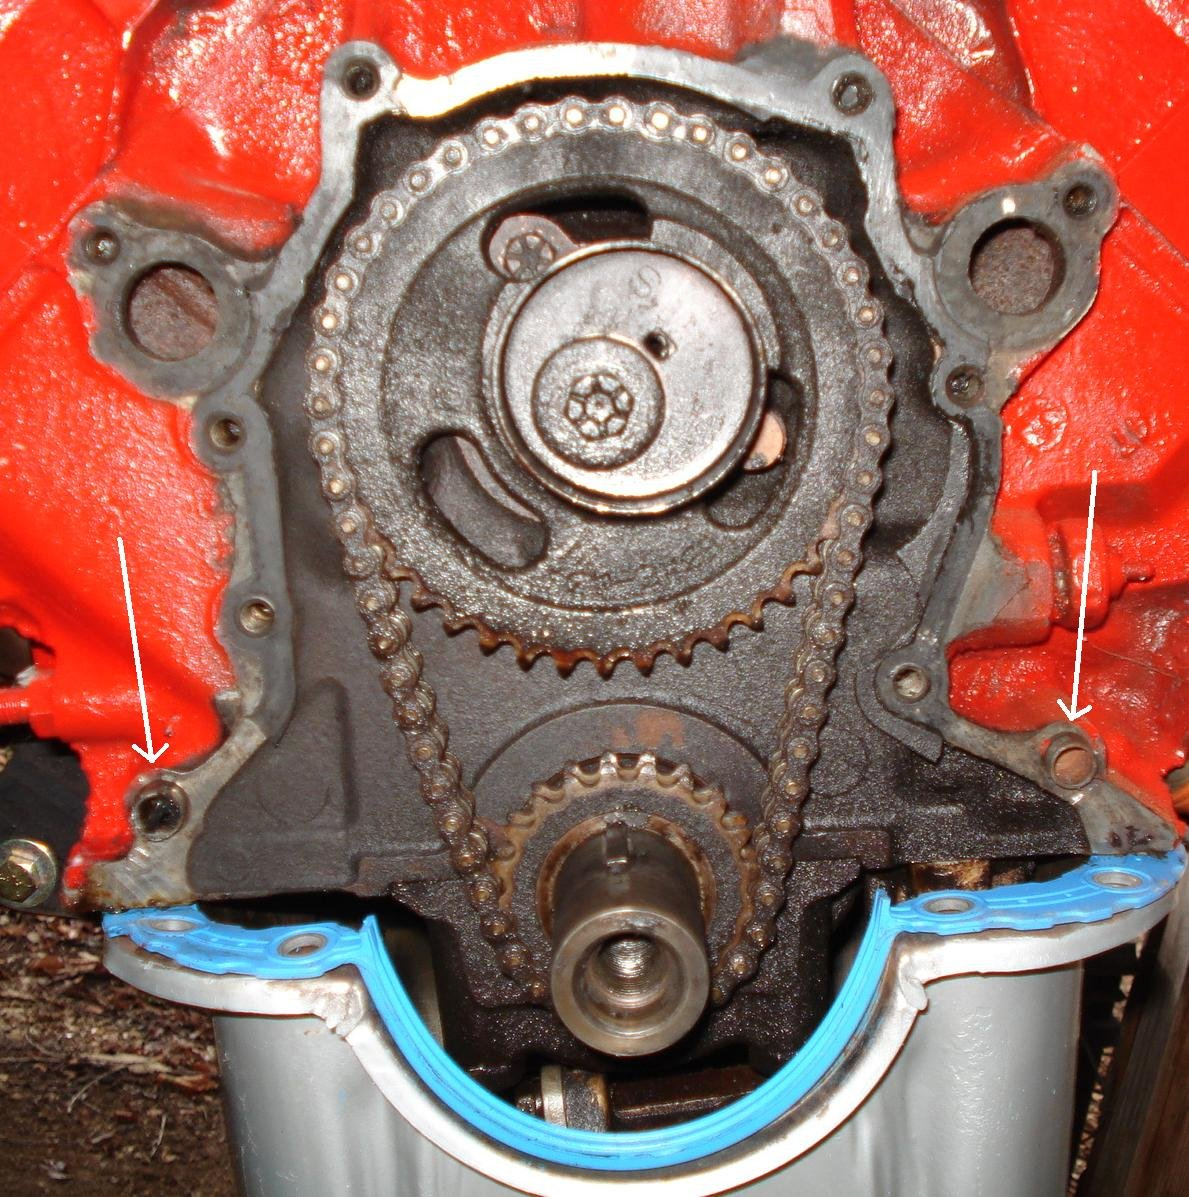 Ford 302 Firing Order >> 302 timing cover problem - Ford Mustang Forum